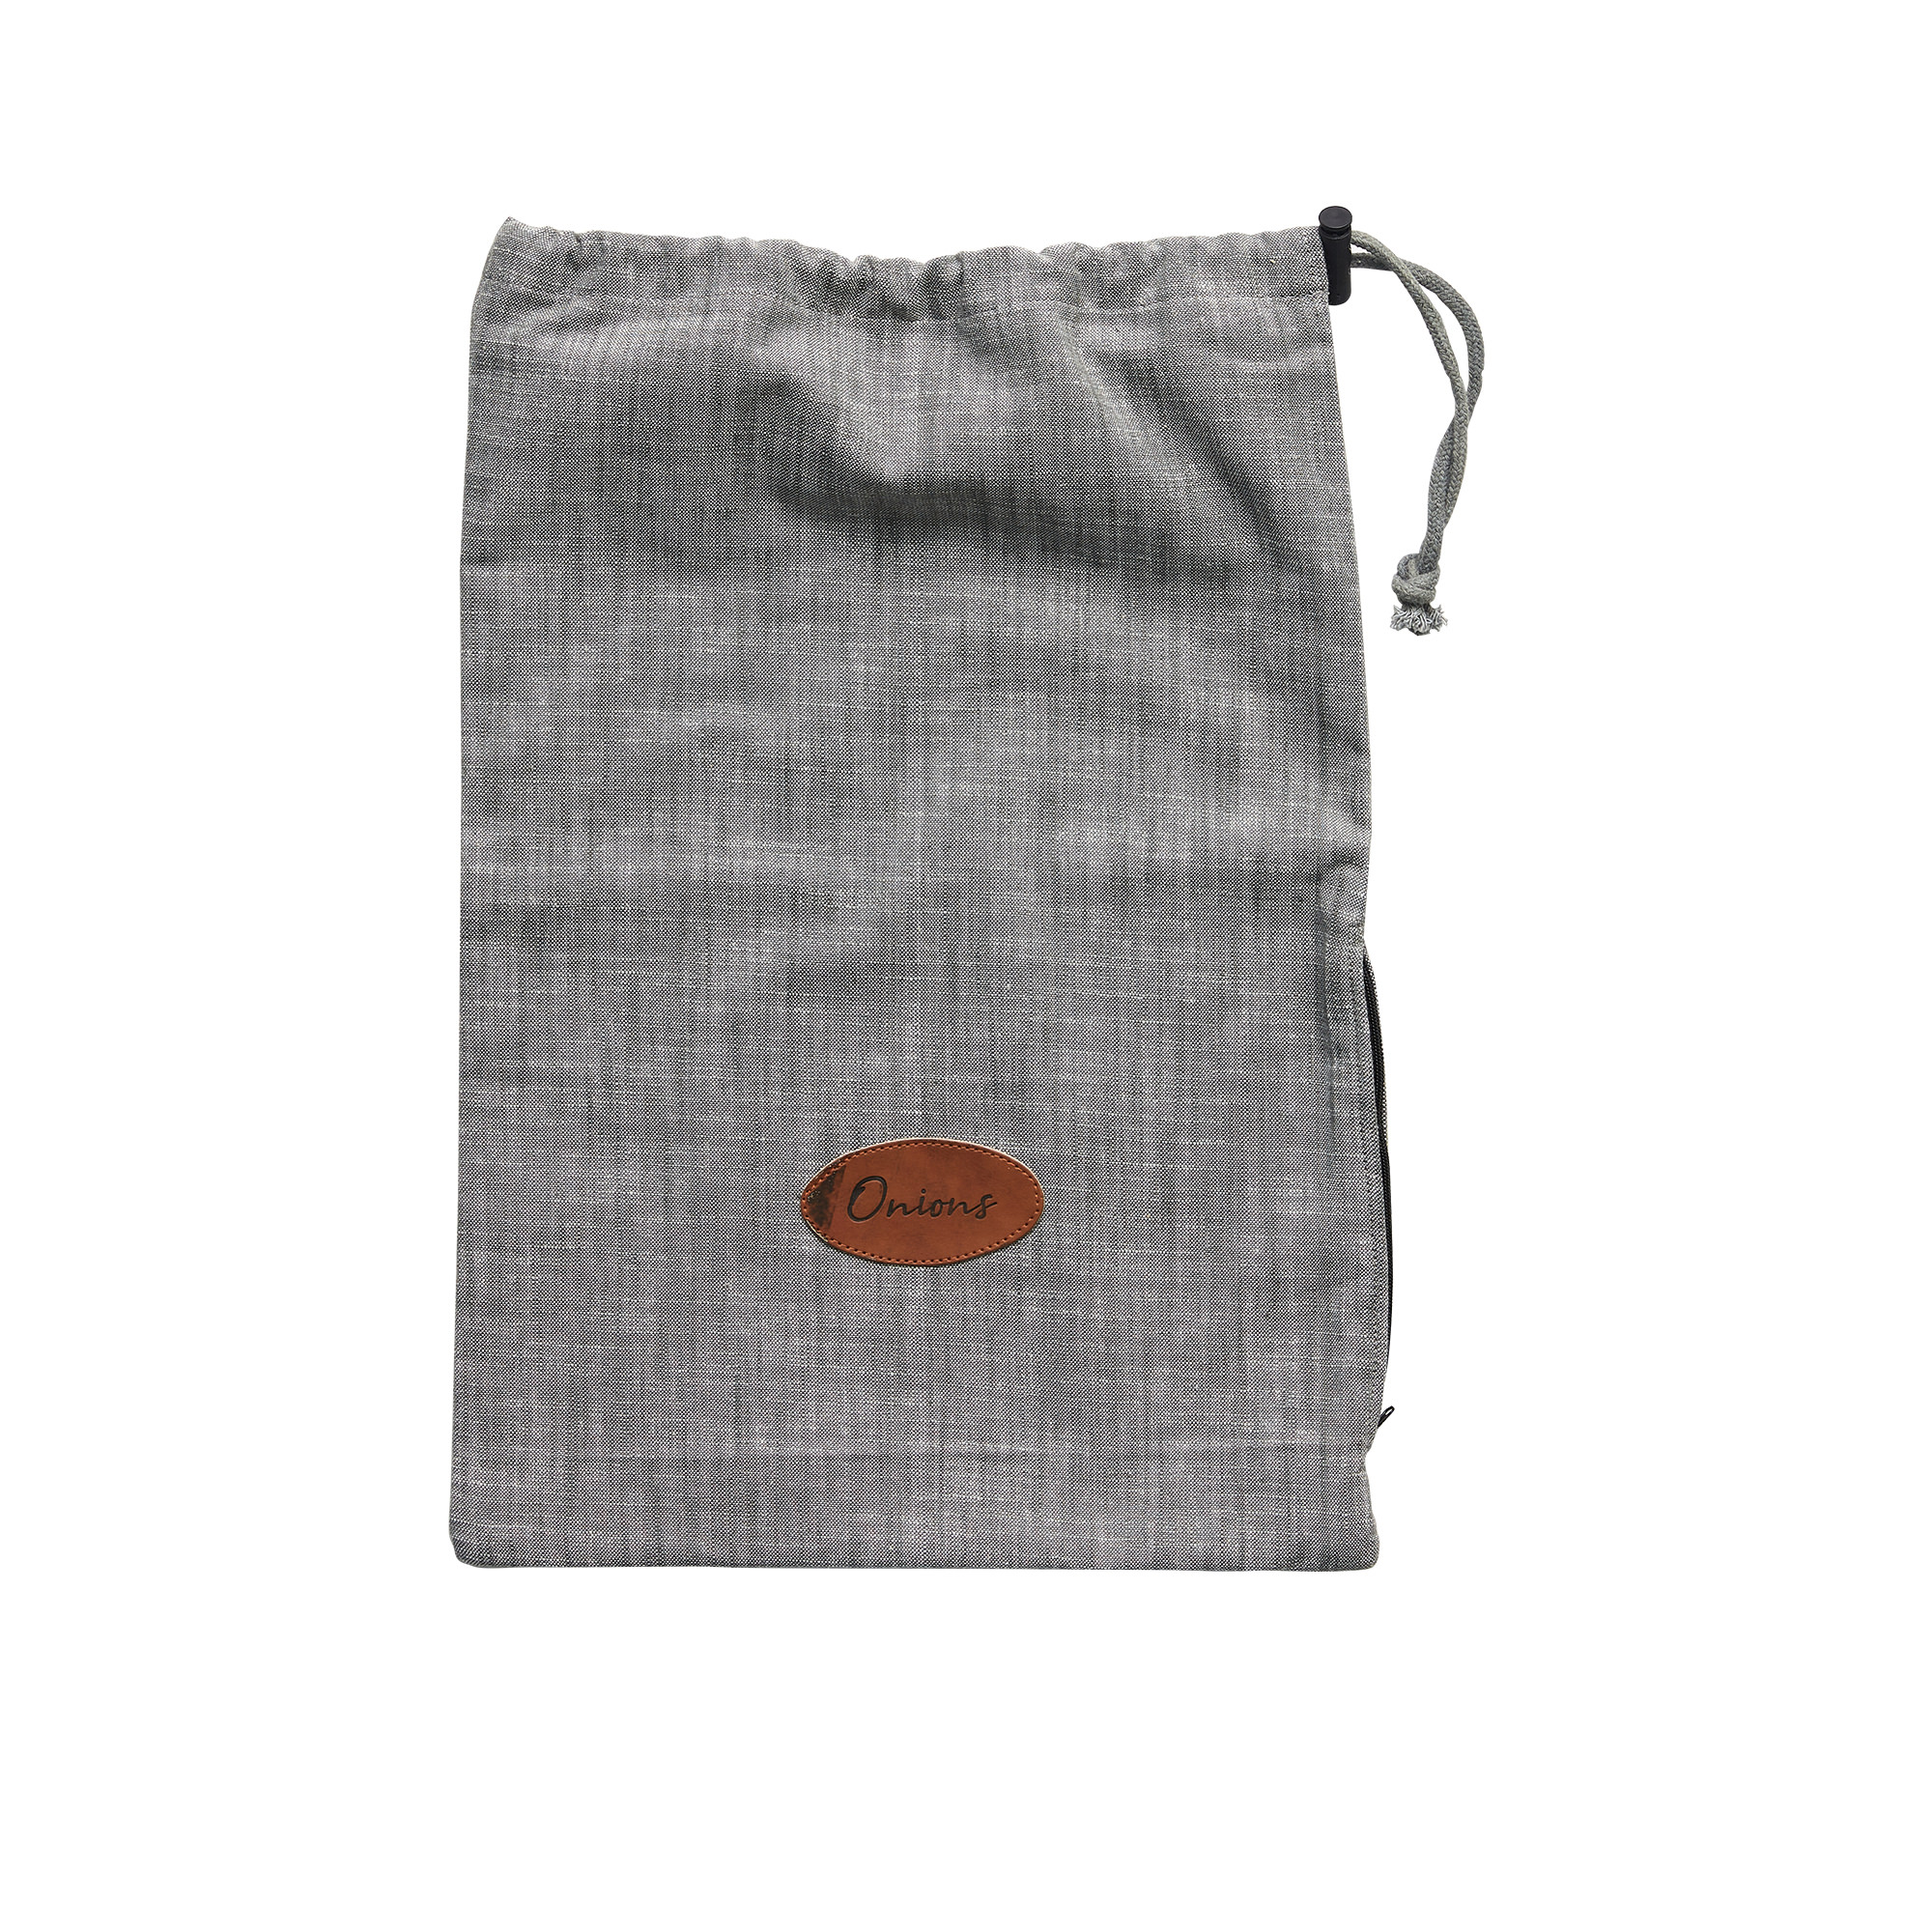 Salisbury & Co Essentials Onion Bag 30x45cm Charcoal